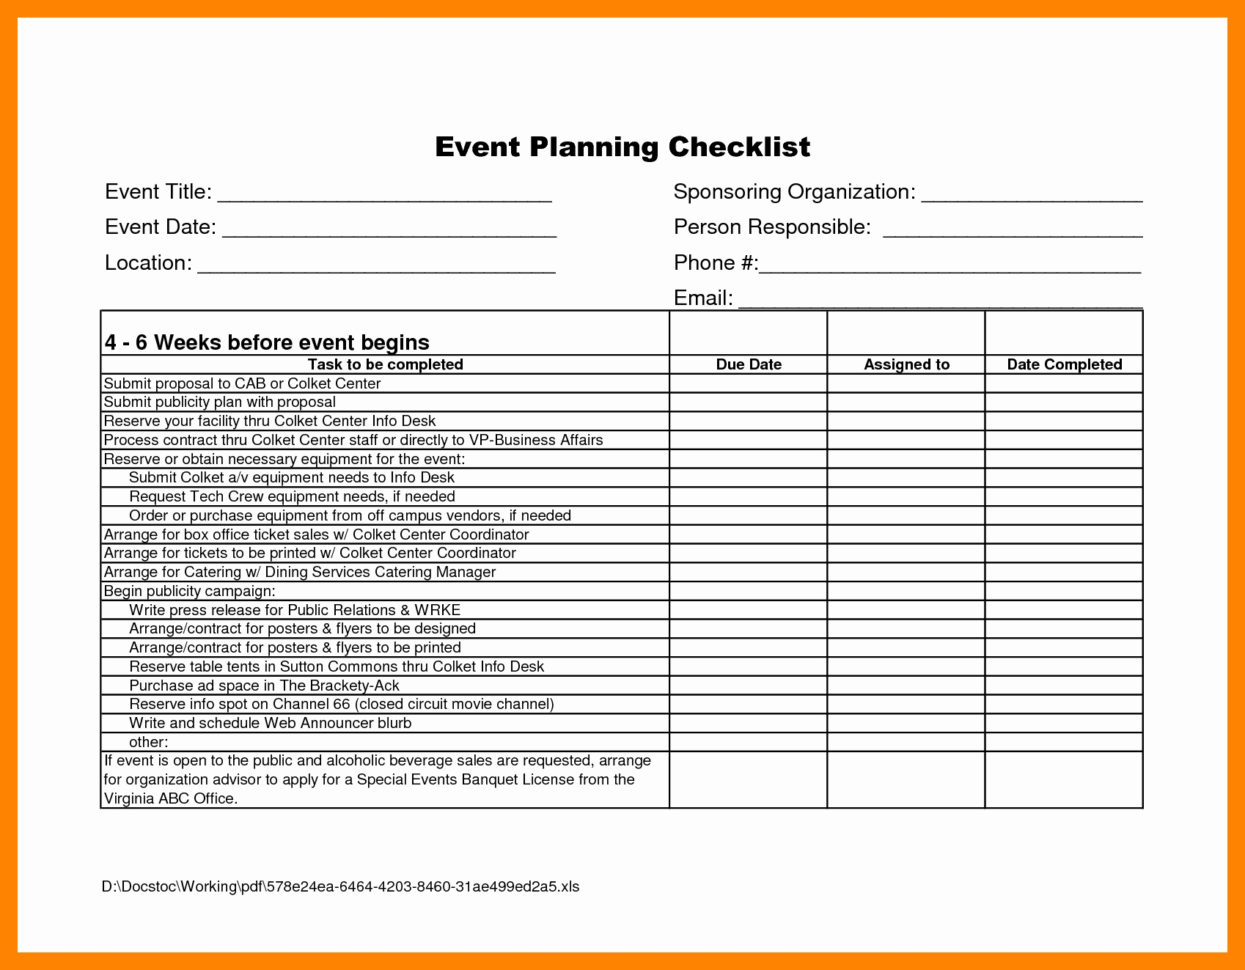 Event Planning Spreadsheet As Online Spreadsheet Free Online To Event Planning Spreadsheet Template